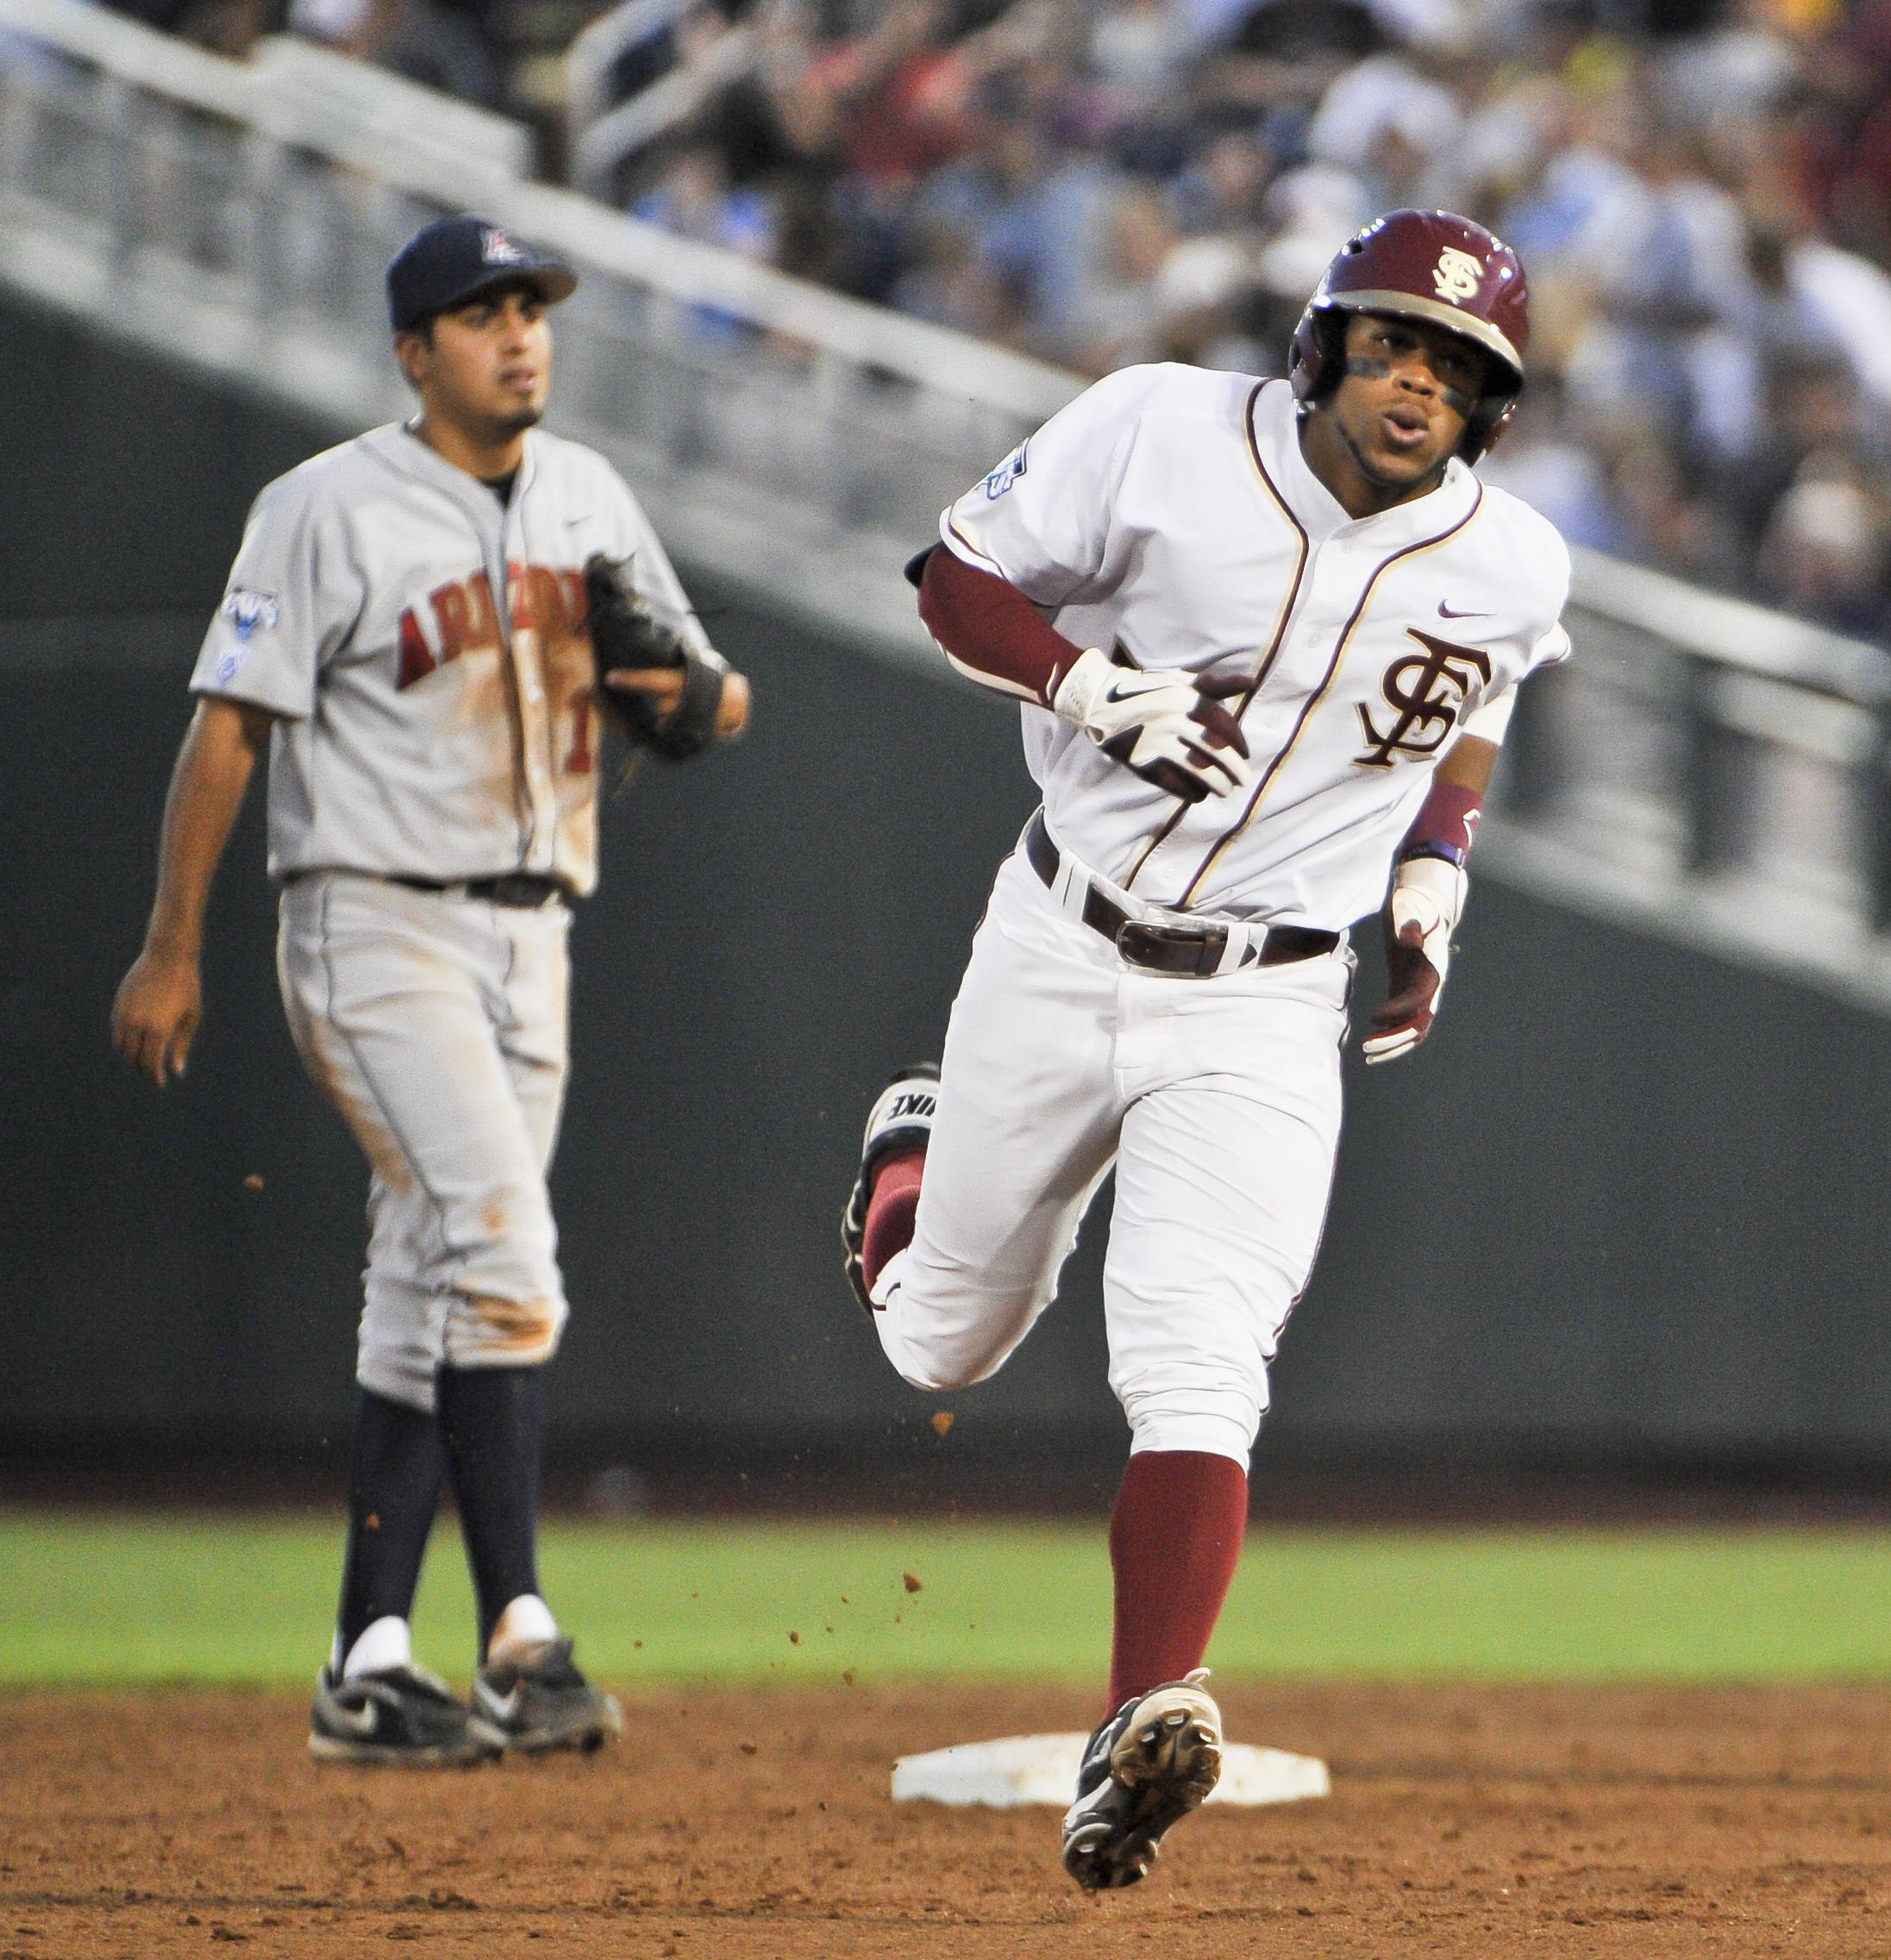 Florida State's Sherman Johnson, right, rounds the bases past Arizona's Alex Mejia, left, after Johnson hit a solo home run in the third inning. (AP Photo/Eric Francis)